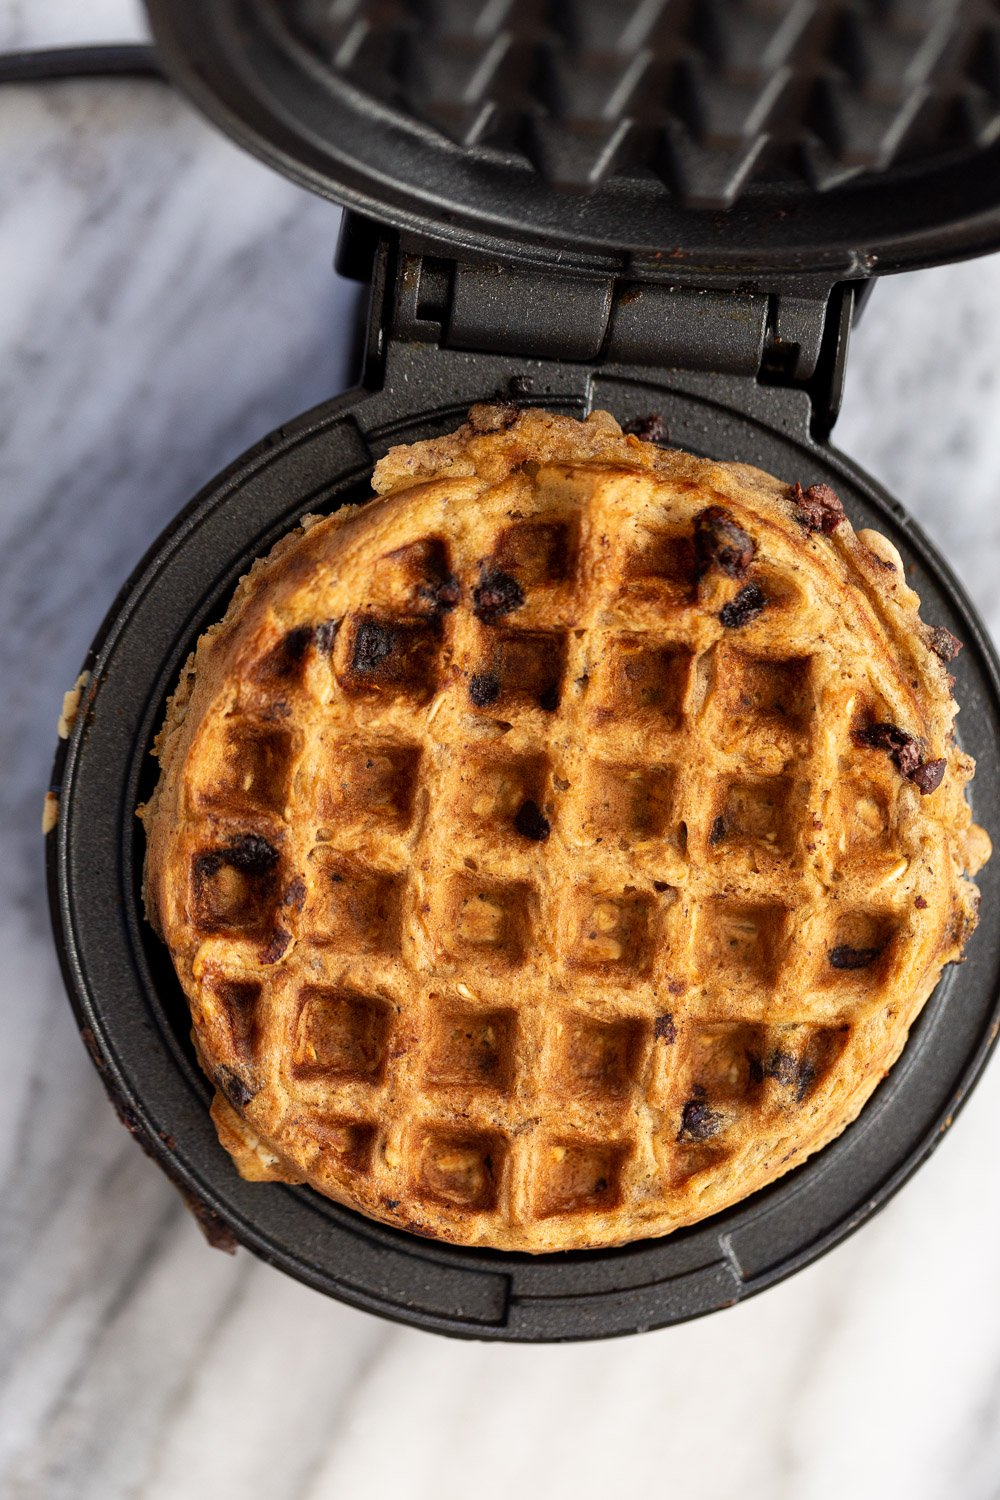 a vegan oatmeal chocolate chip waffle being baked in a black iron waffle maker